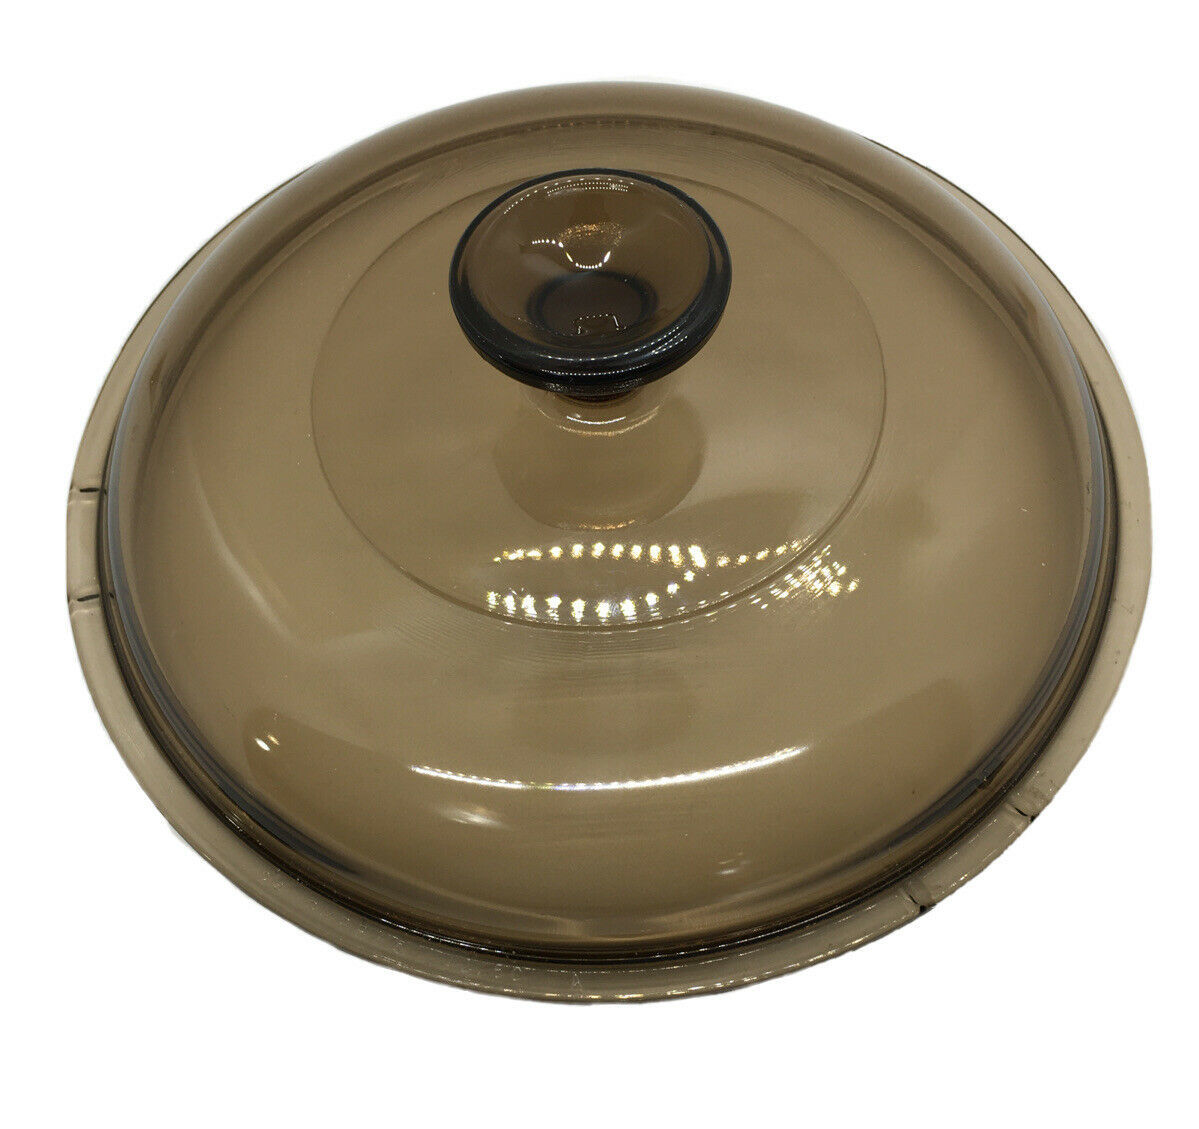 Pyrex Corning Visions Amber Round Glass Lid V-2.5-C  8 Inch - $7.92